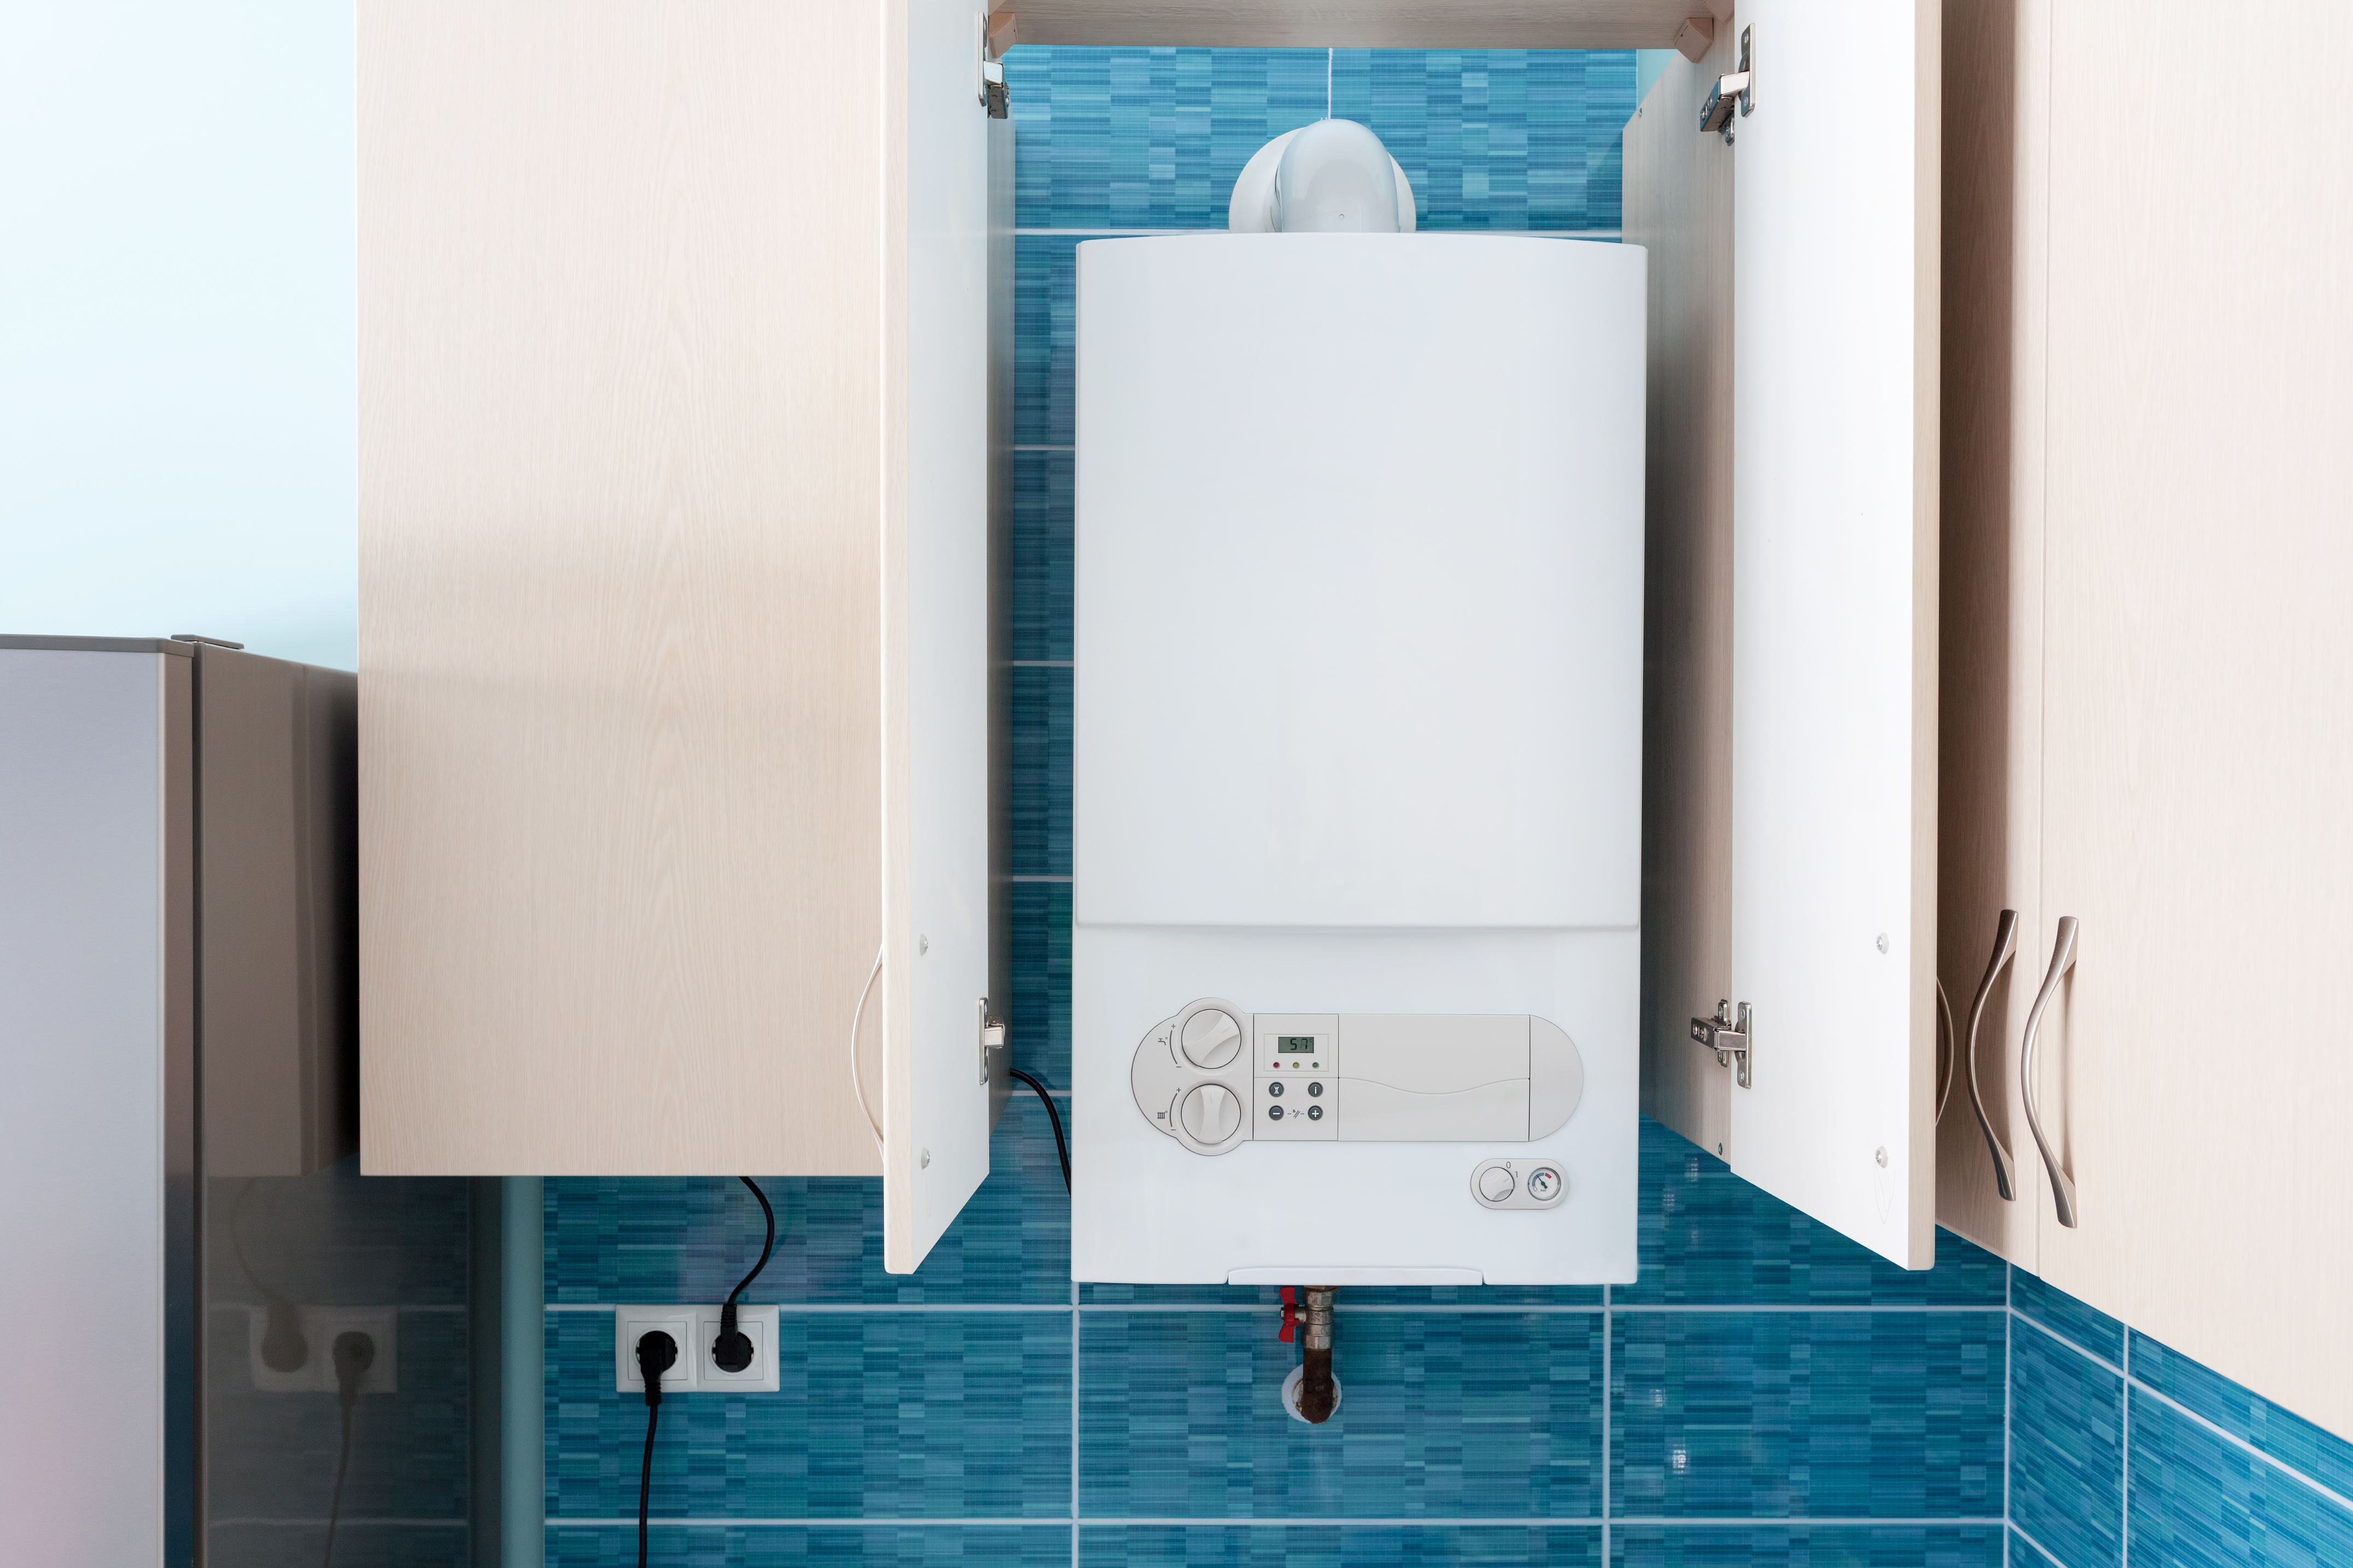 How to Stop Noise Coming From a Home Hot Water Tank | Home